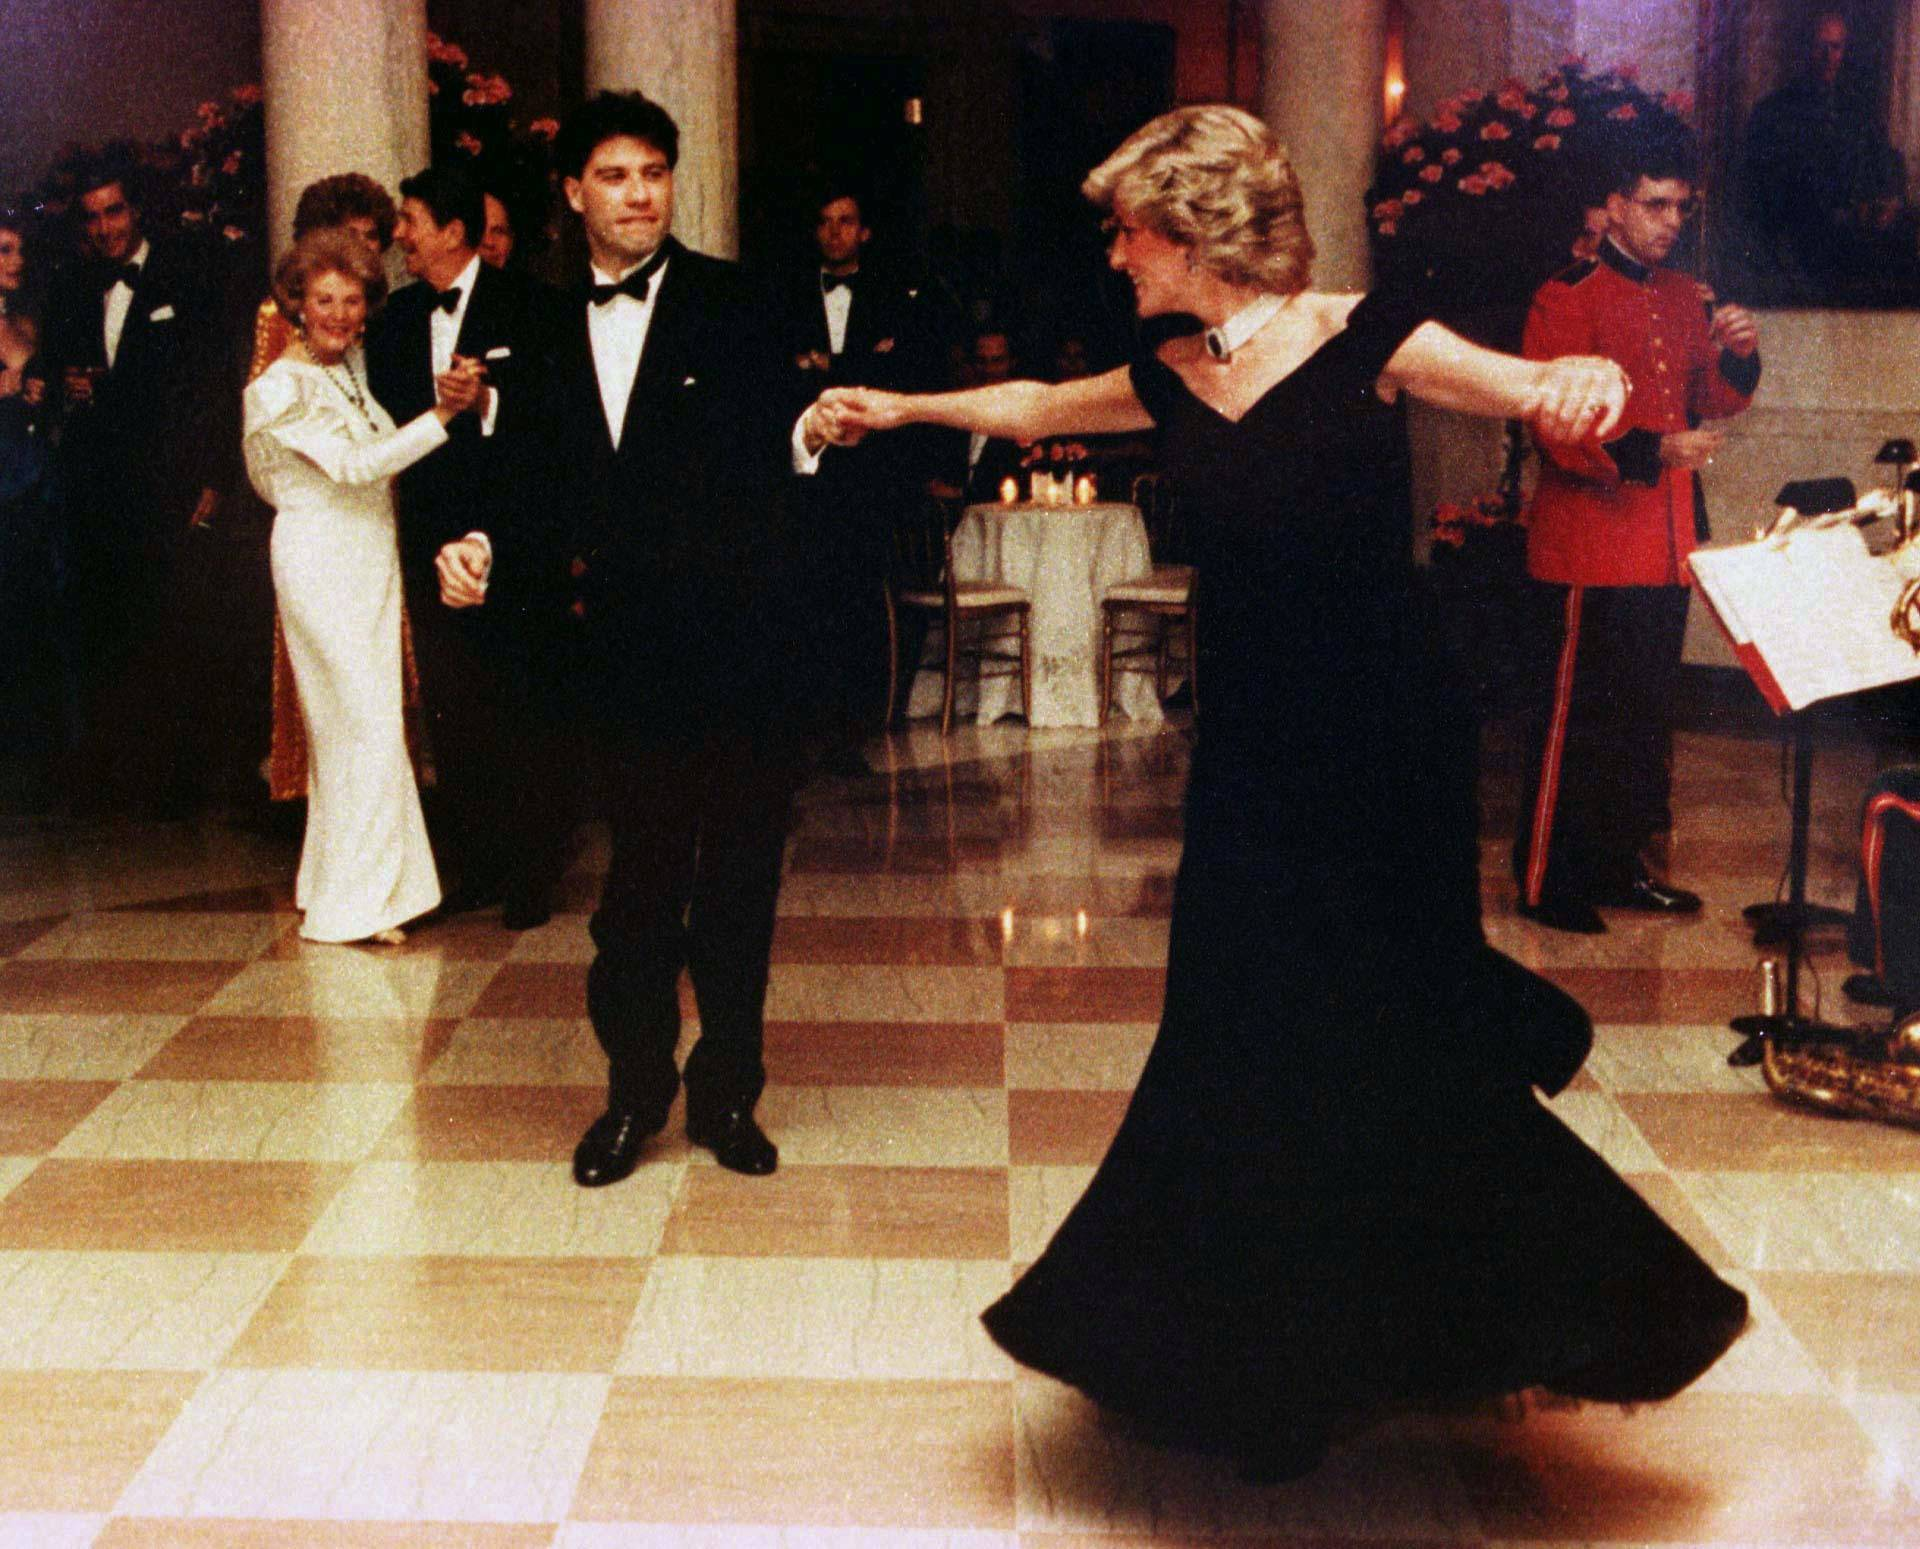 FILE PHOTO: Britain's Princess Diana is shown wearing a Victor Edelstein gown as she dances at a November 9, 1985 White House dinner with actor John Travolta, in Washington